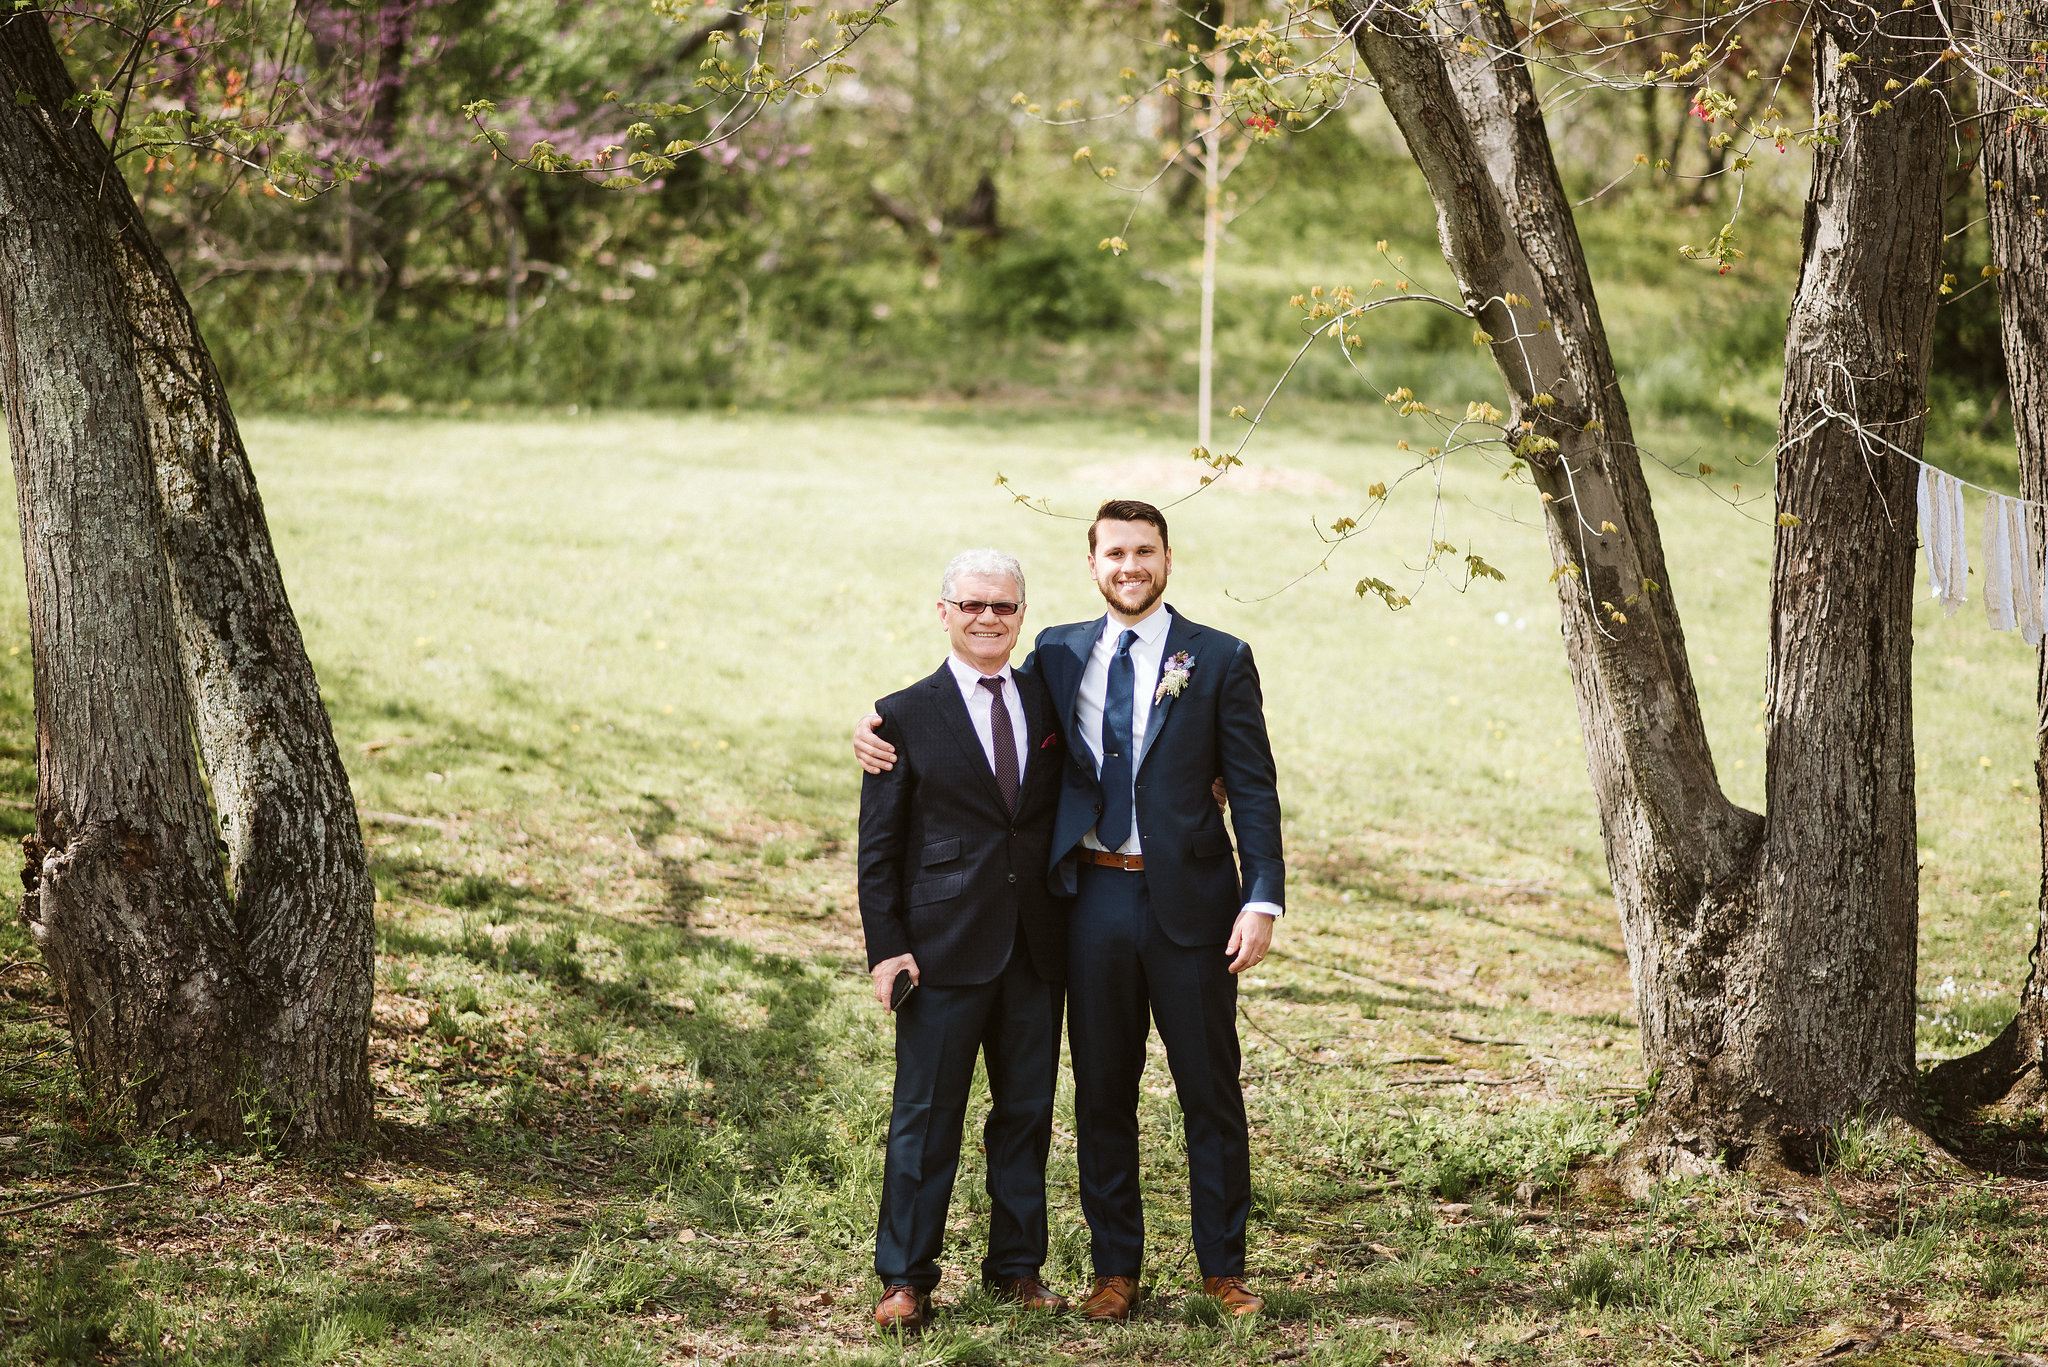 Spring Outdoor Wedding, Park, Baltimore Wedding Photographer, DIY, Classic, Upcycled, Garden Party, Romantic, Portrait of Groom with Father of the Groom, Family Portrait, Suit Supply, Wildflowers